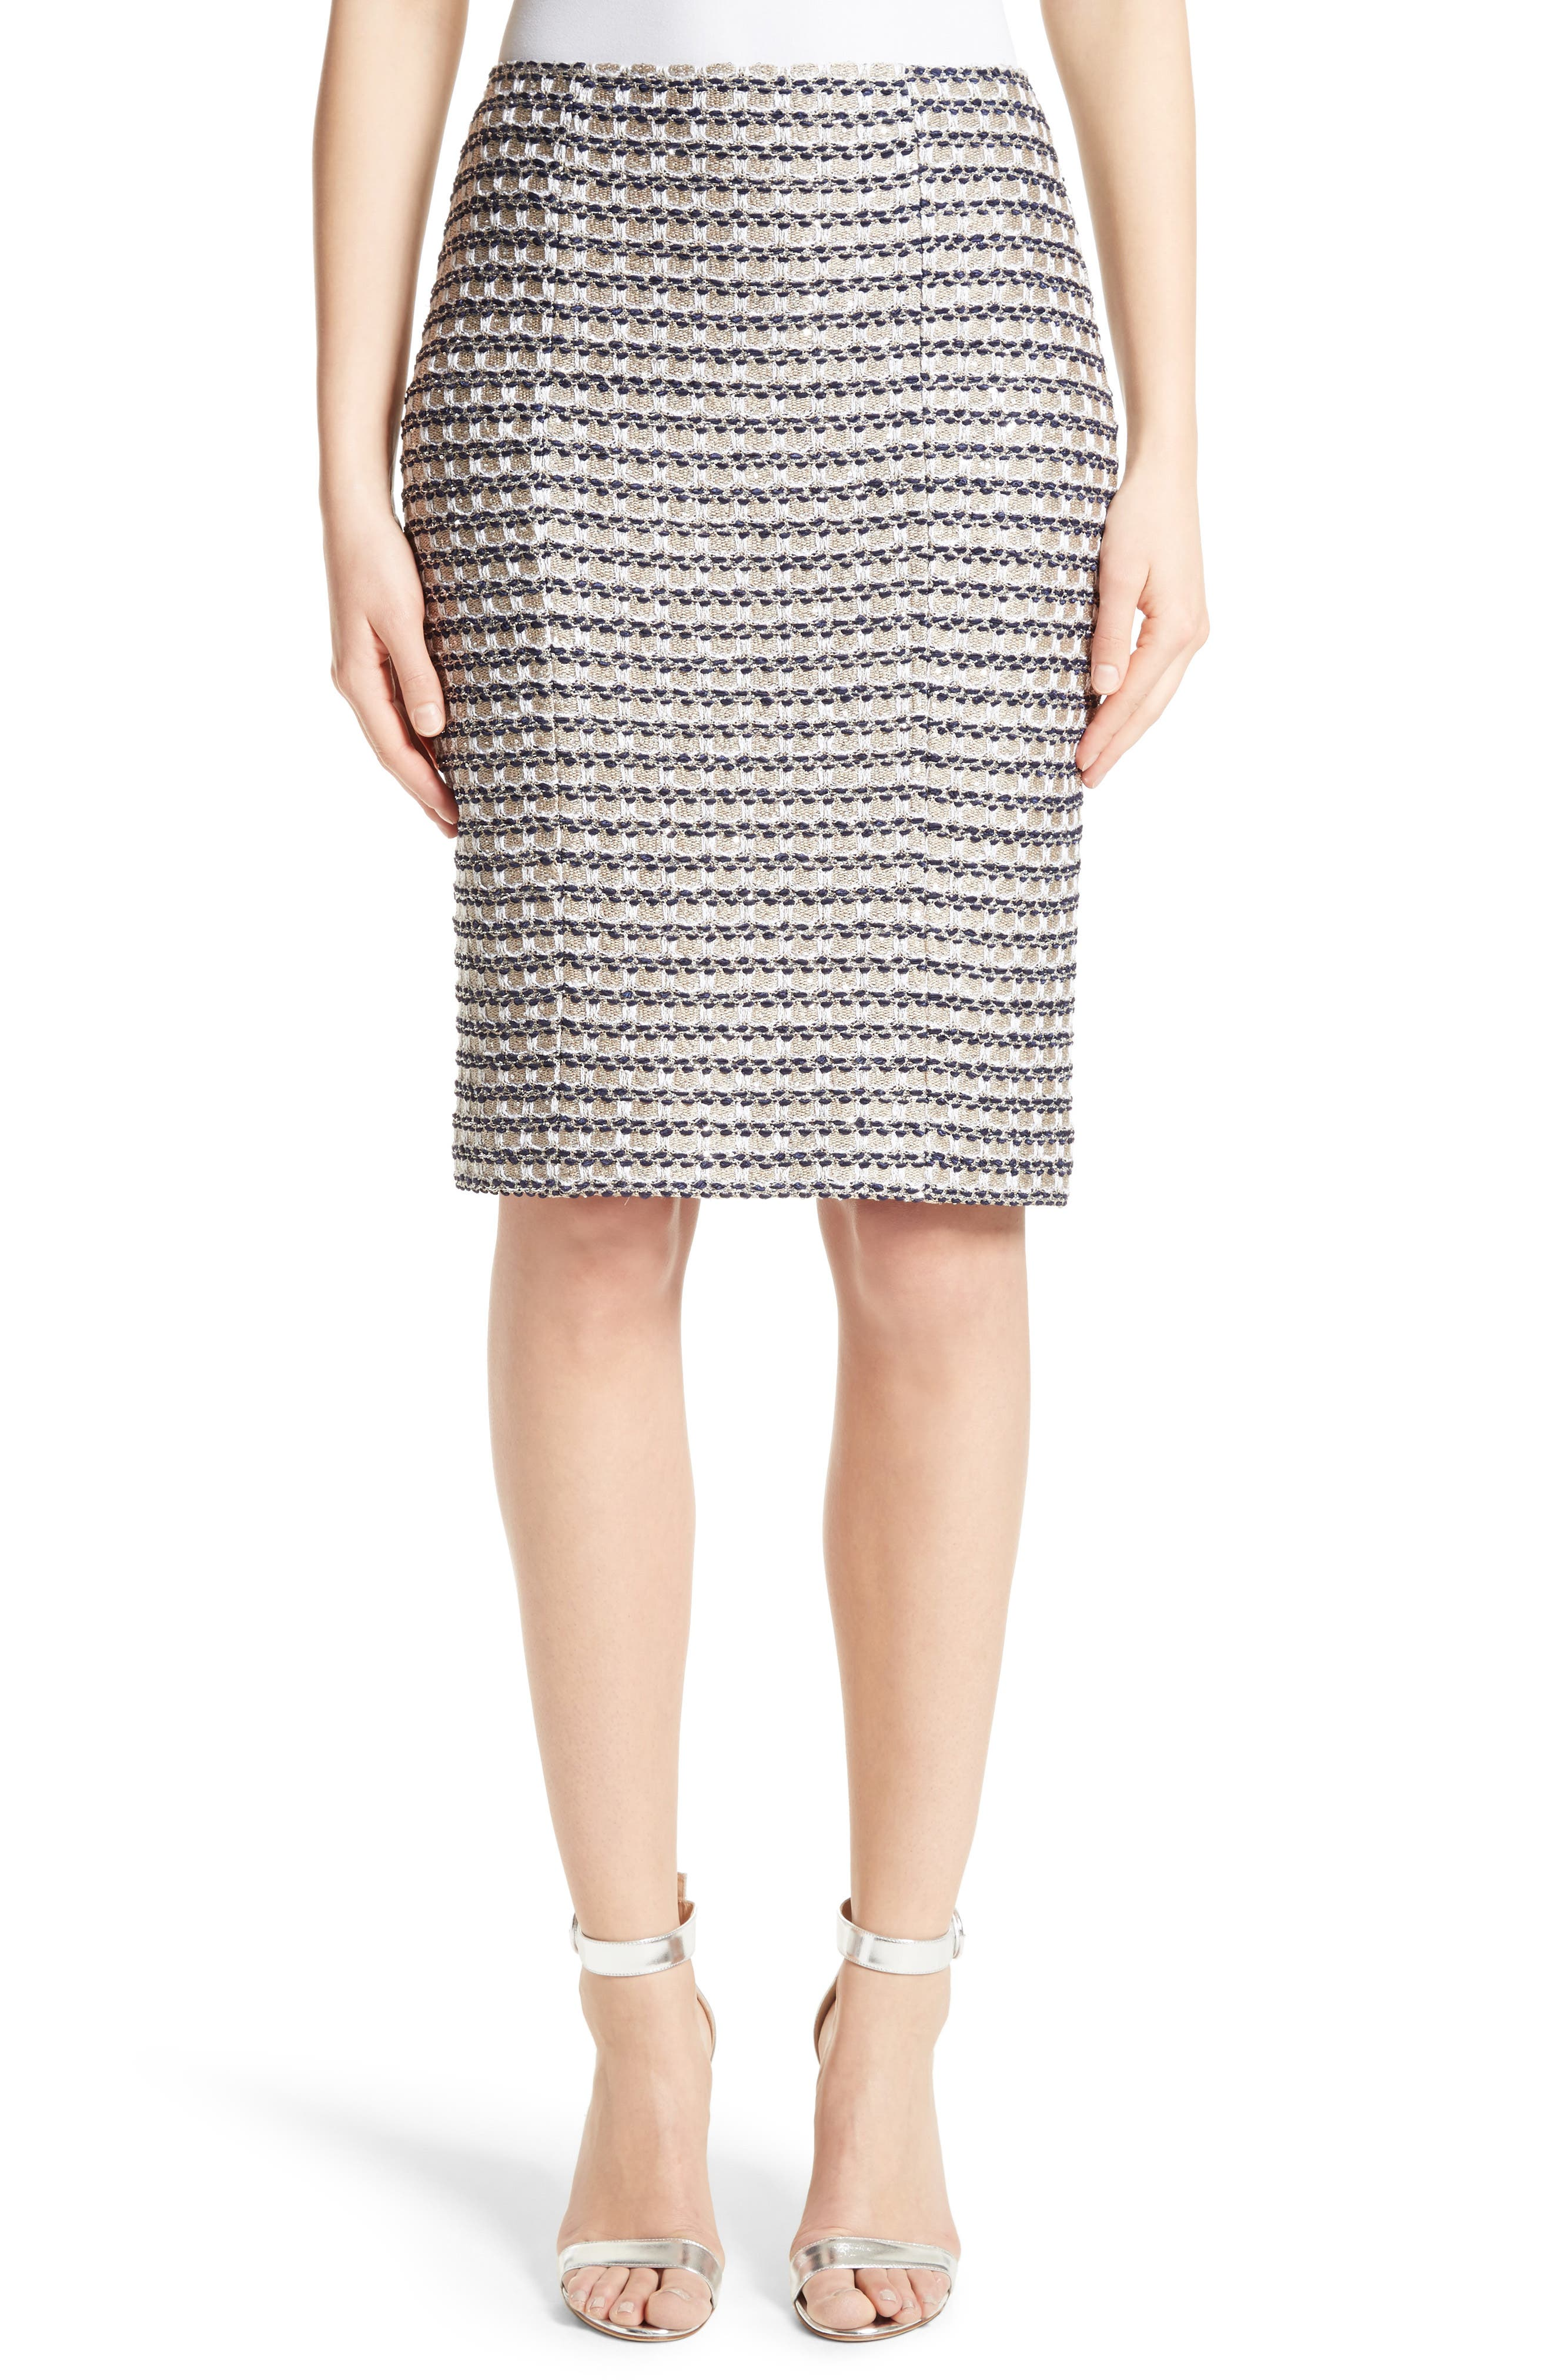 Vany Tweed Knit Pencil Skirt,                         Main,                         color, 040